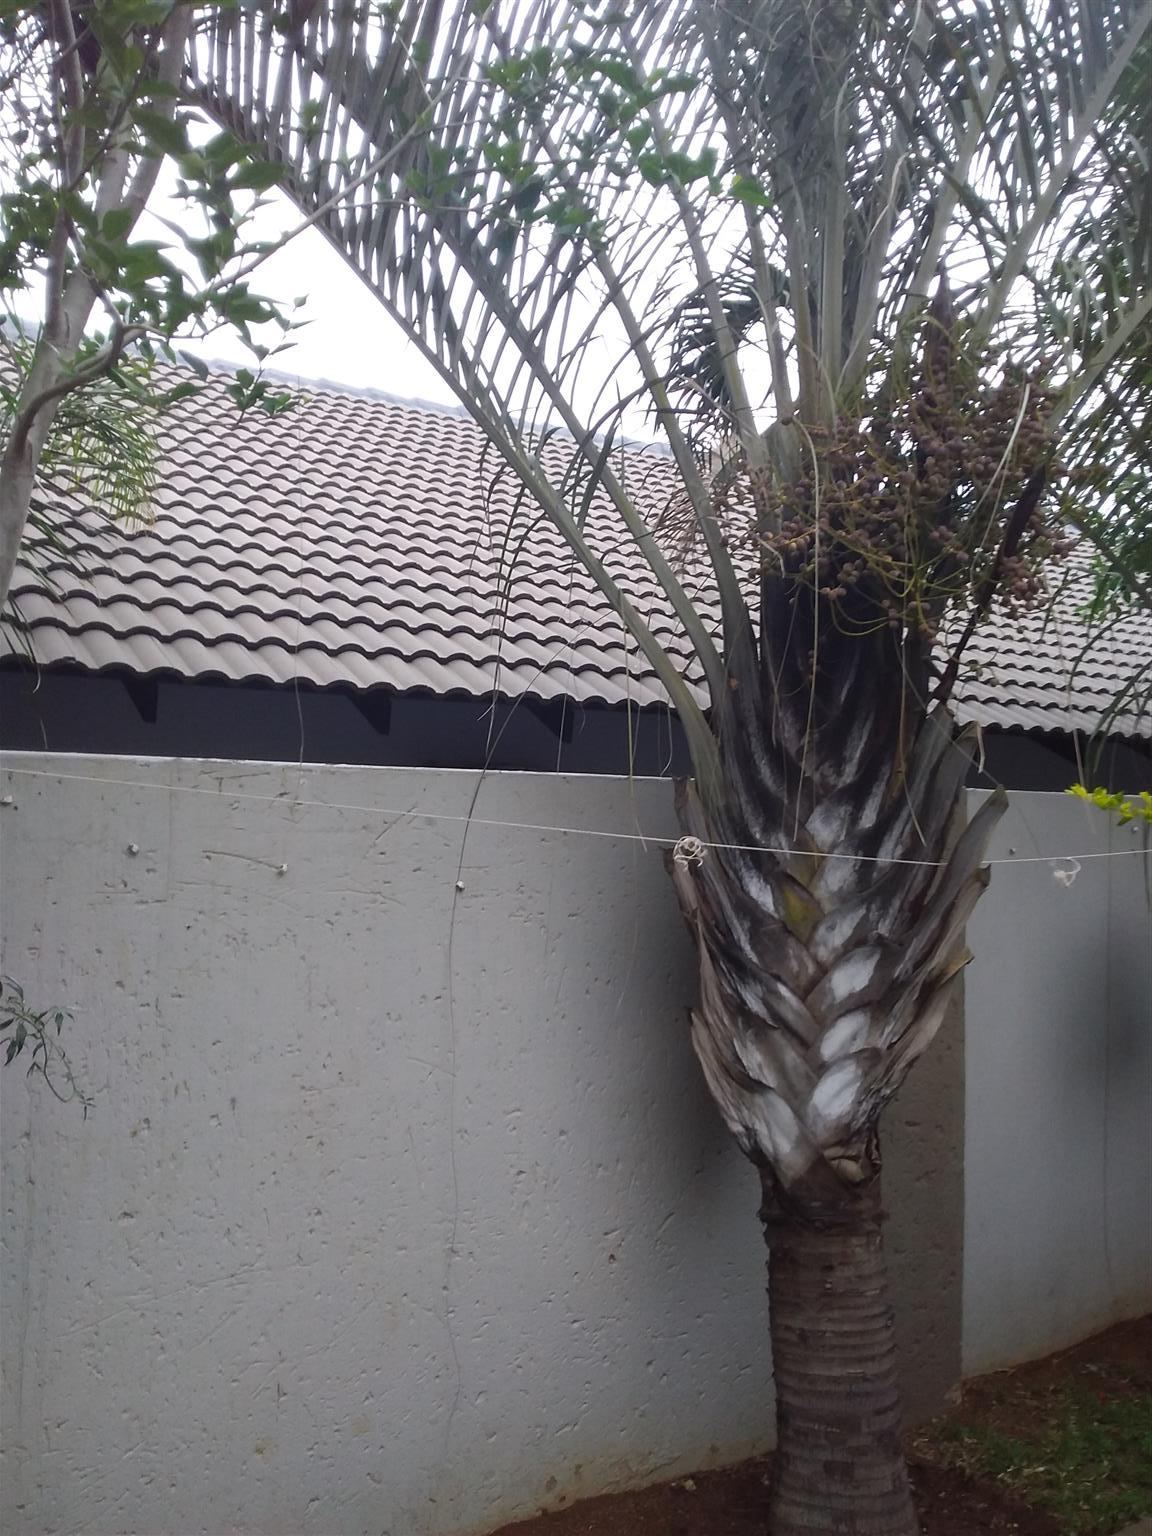 Triangle Palms ,( Dypsis decaryi)